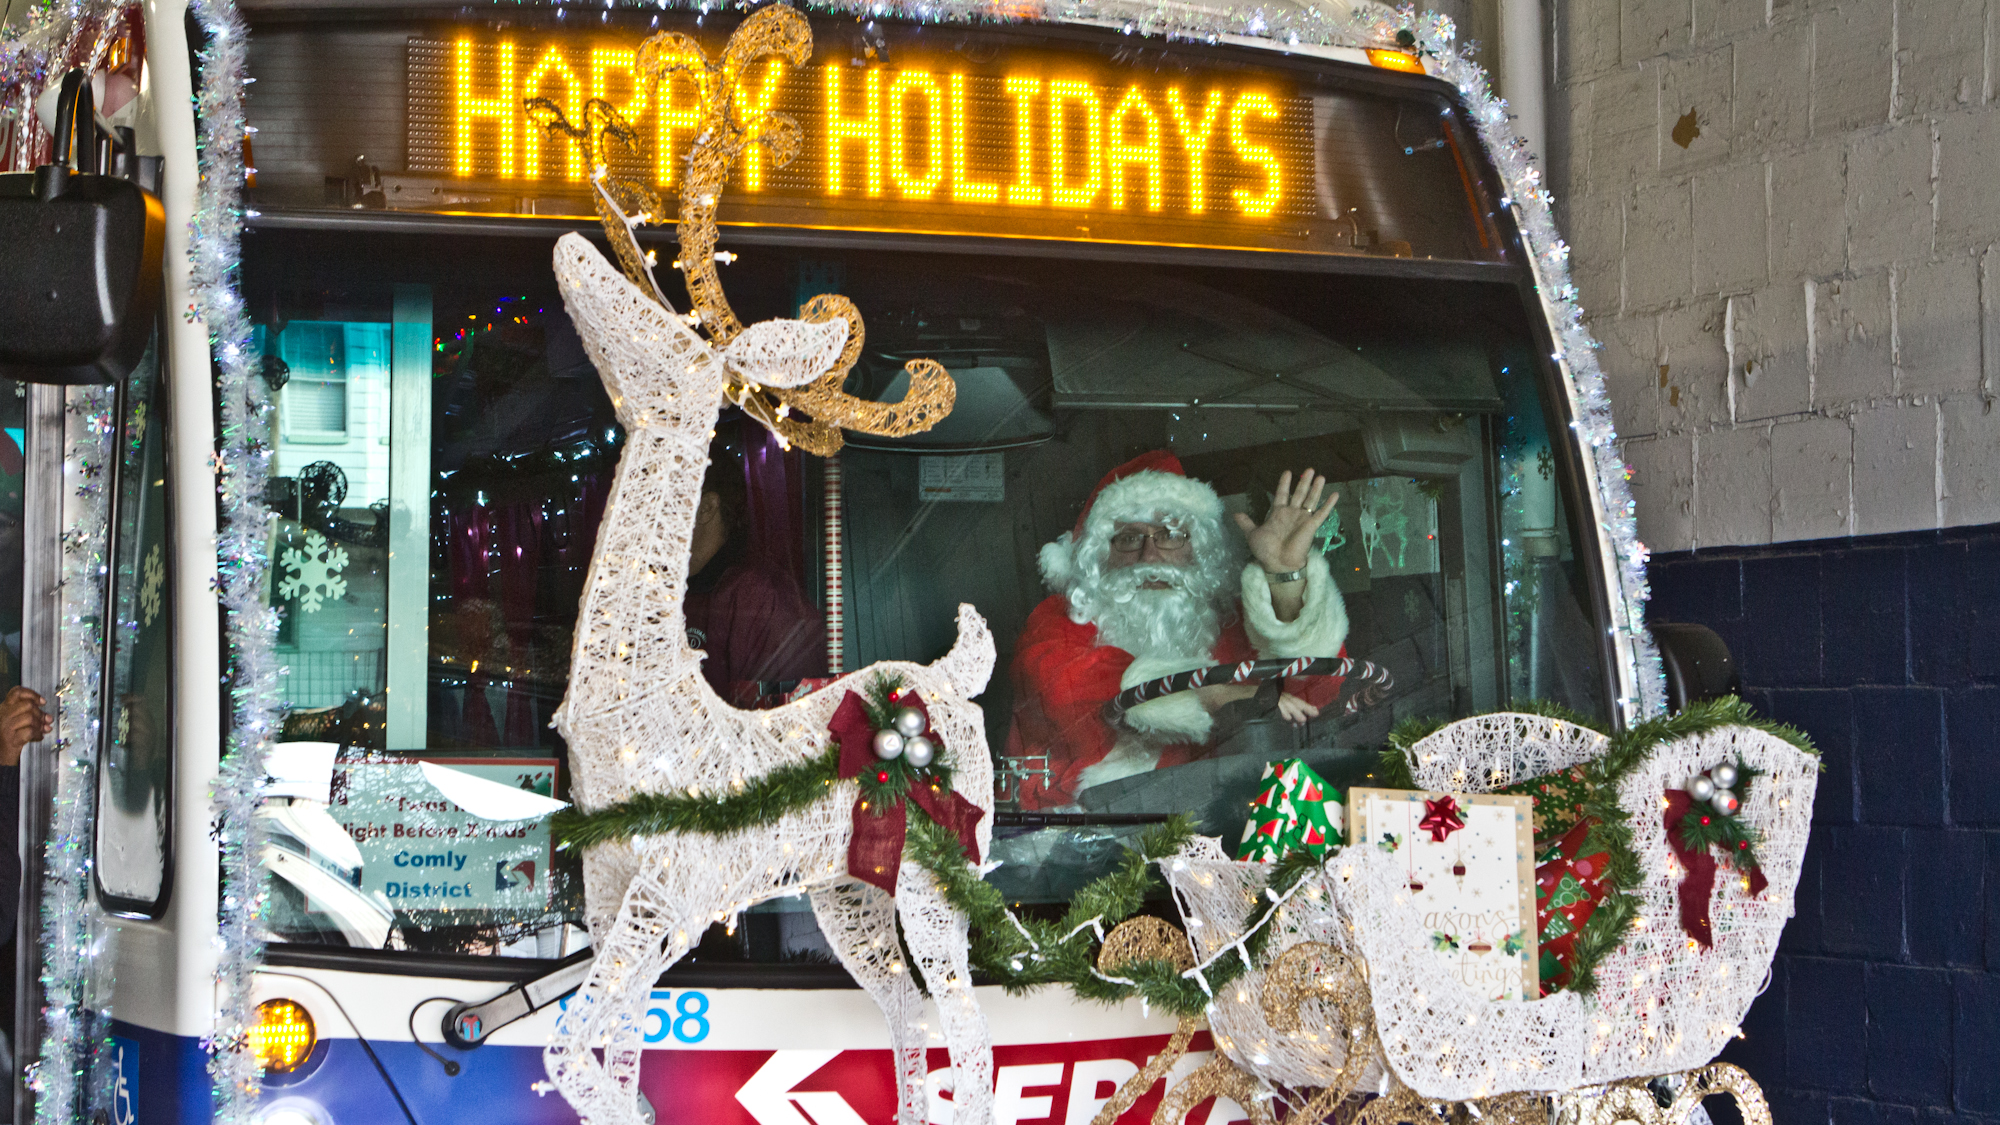 SEPTA's Comly district's decorations were inspired by the Nigh Before Christmas. (Kimberly Paynter/WHYY)